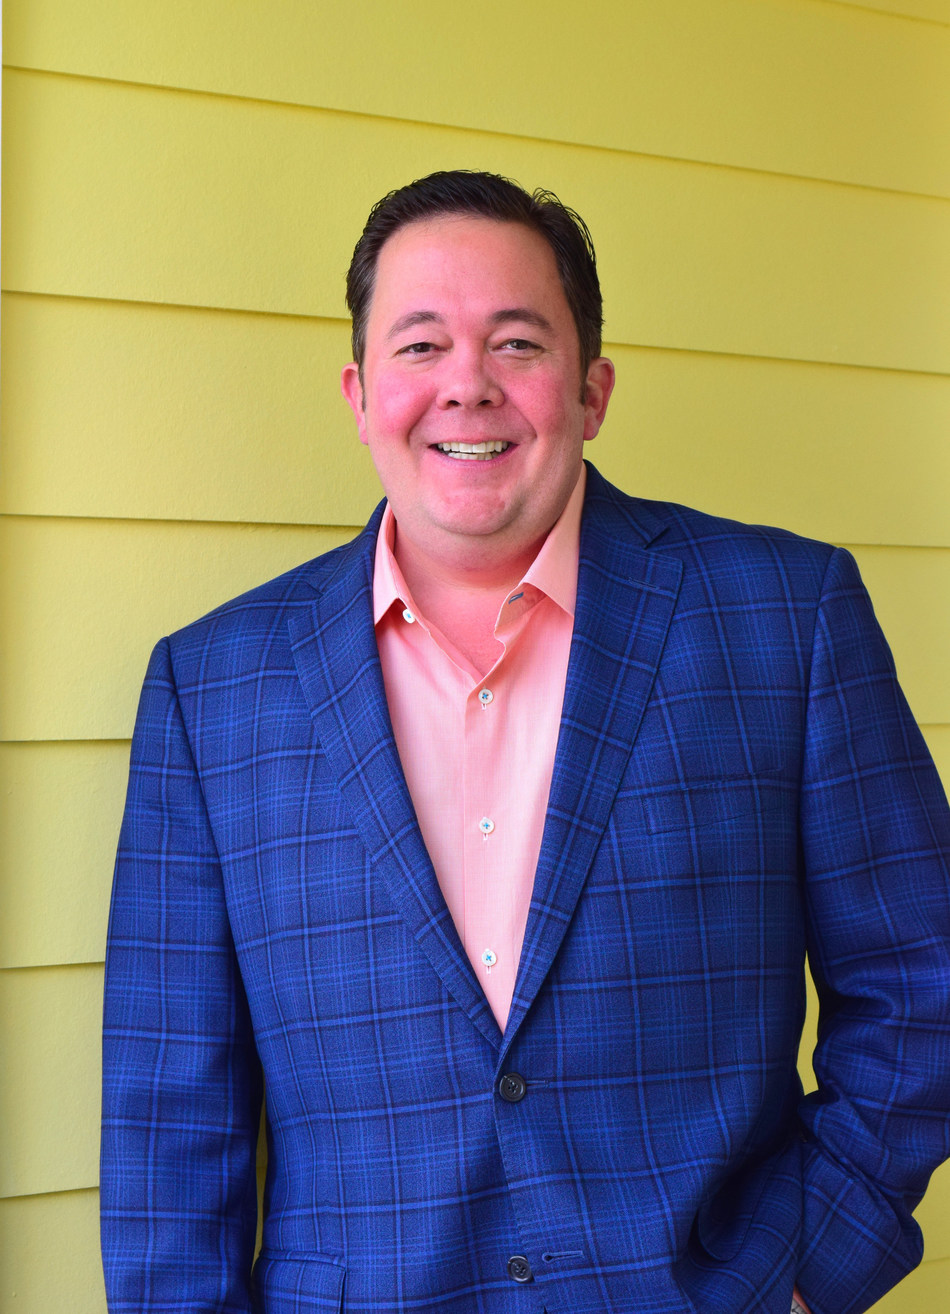 Franchise owner Jonathan Jenswold of AtWork Personnel - Fort Worth is expanding into the Dallas market